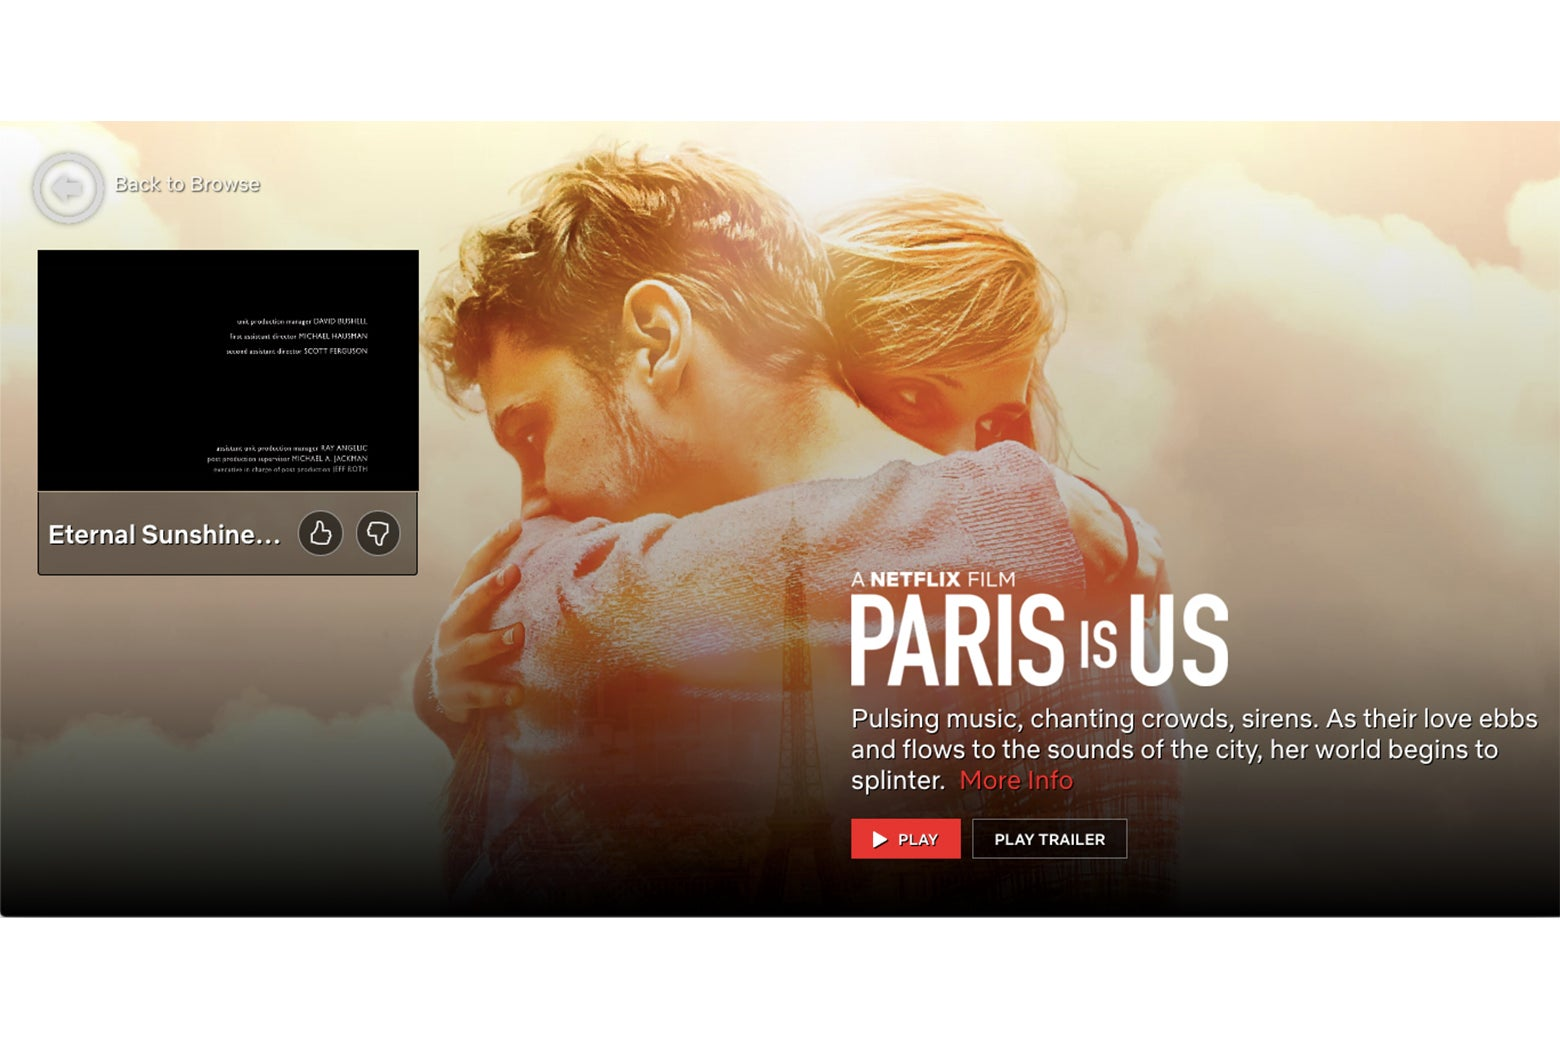 The ending of Eternal Sunshine of the Spotless Mind, buried in an ad for Paris Is Us.